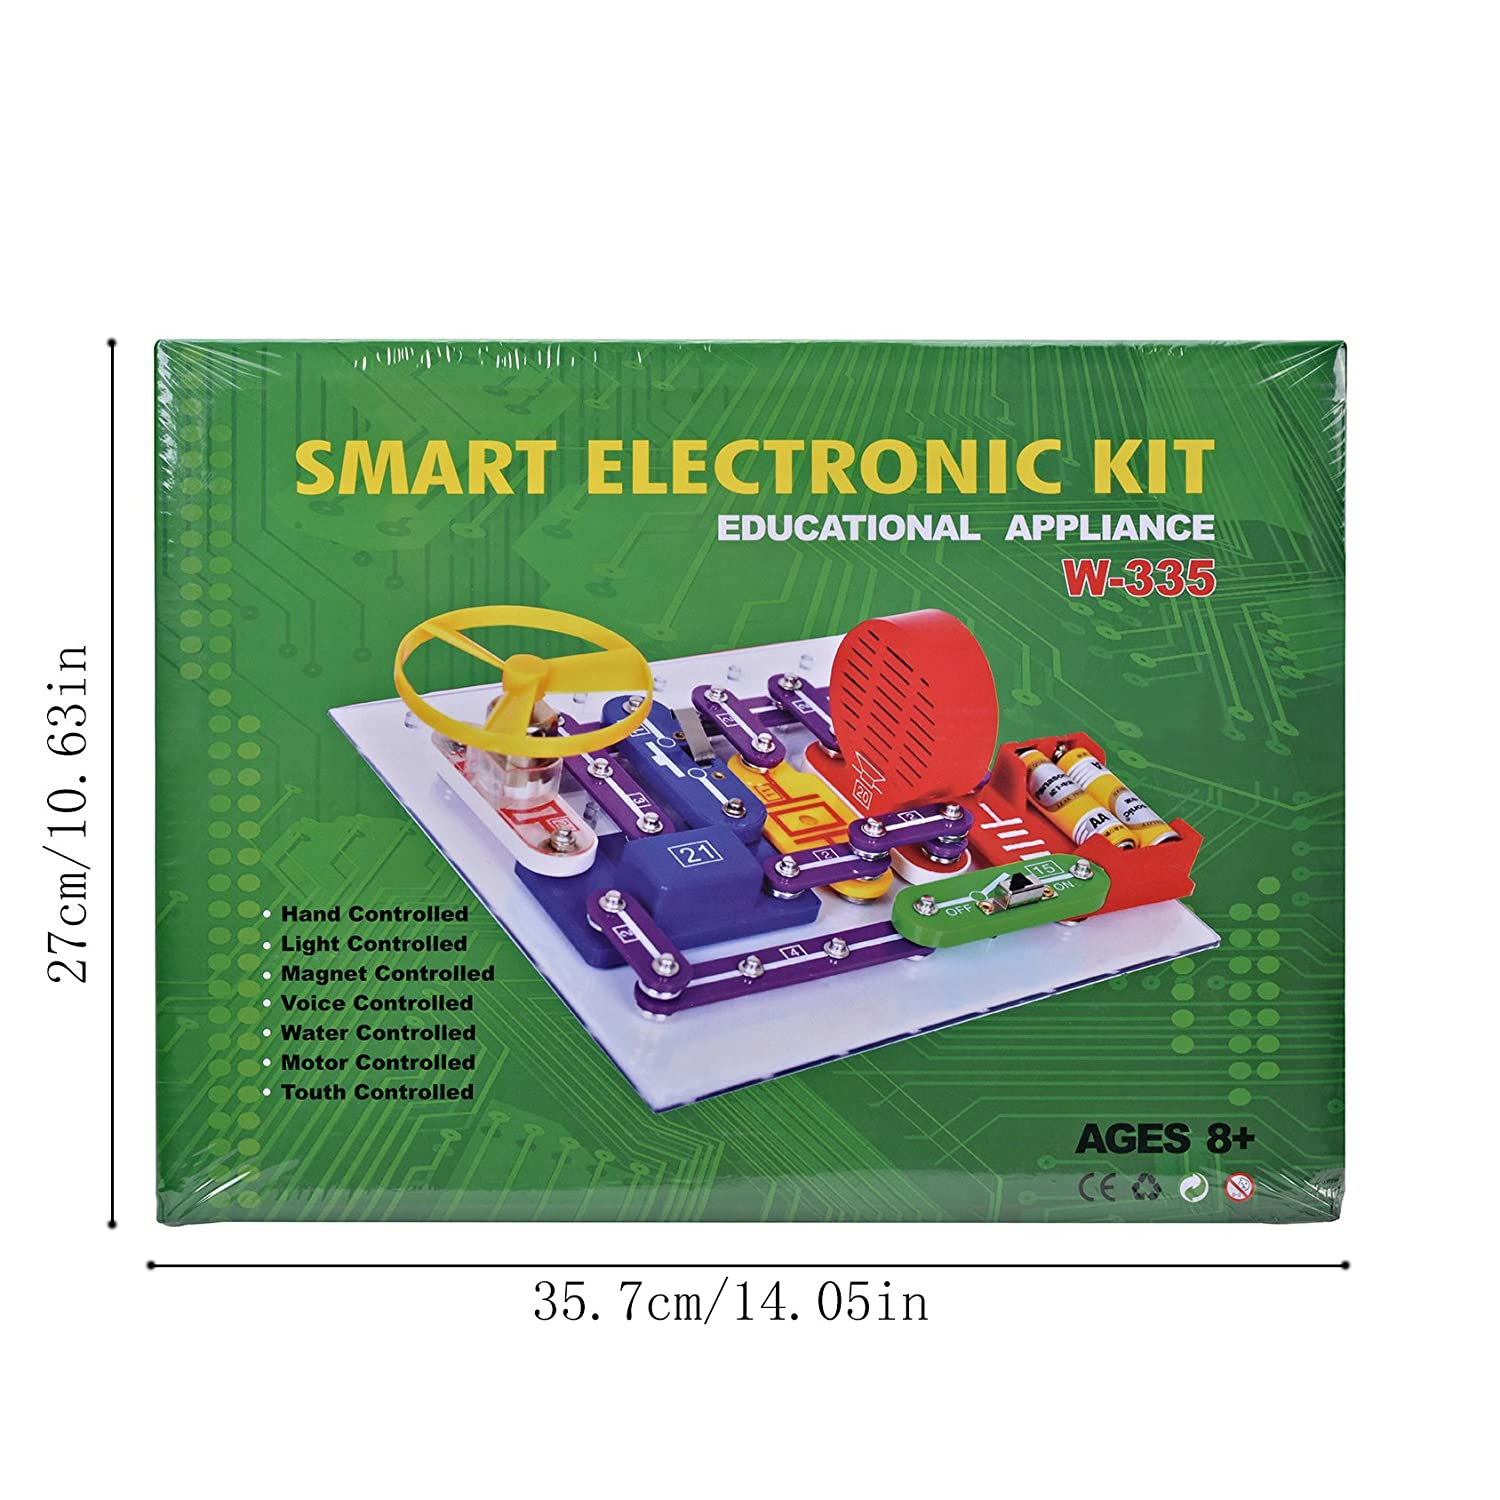 Snap Circuits Lights Electric Circuit Science Kit By Elenco Elsky 335 Electronics Discovery Smart Block Kiteducational Toygreat Diy Building Blocks For